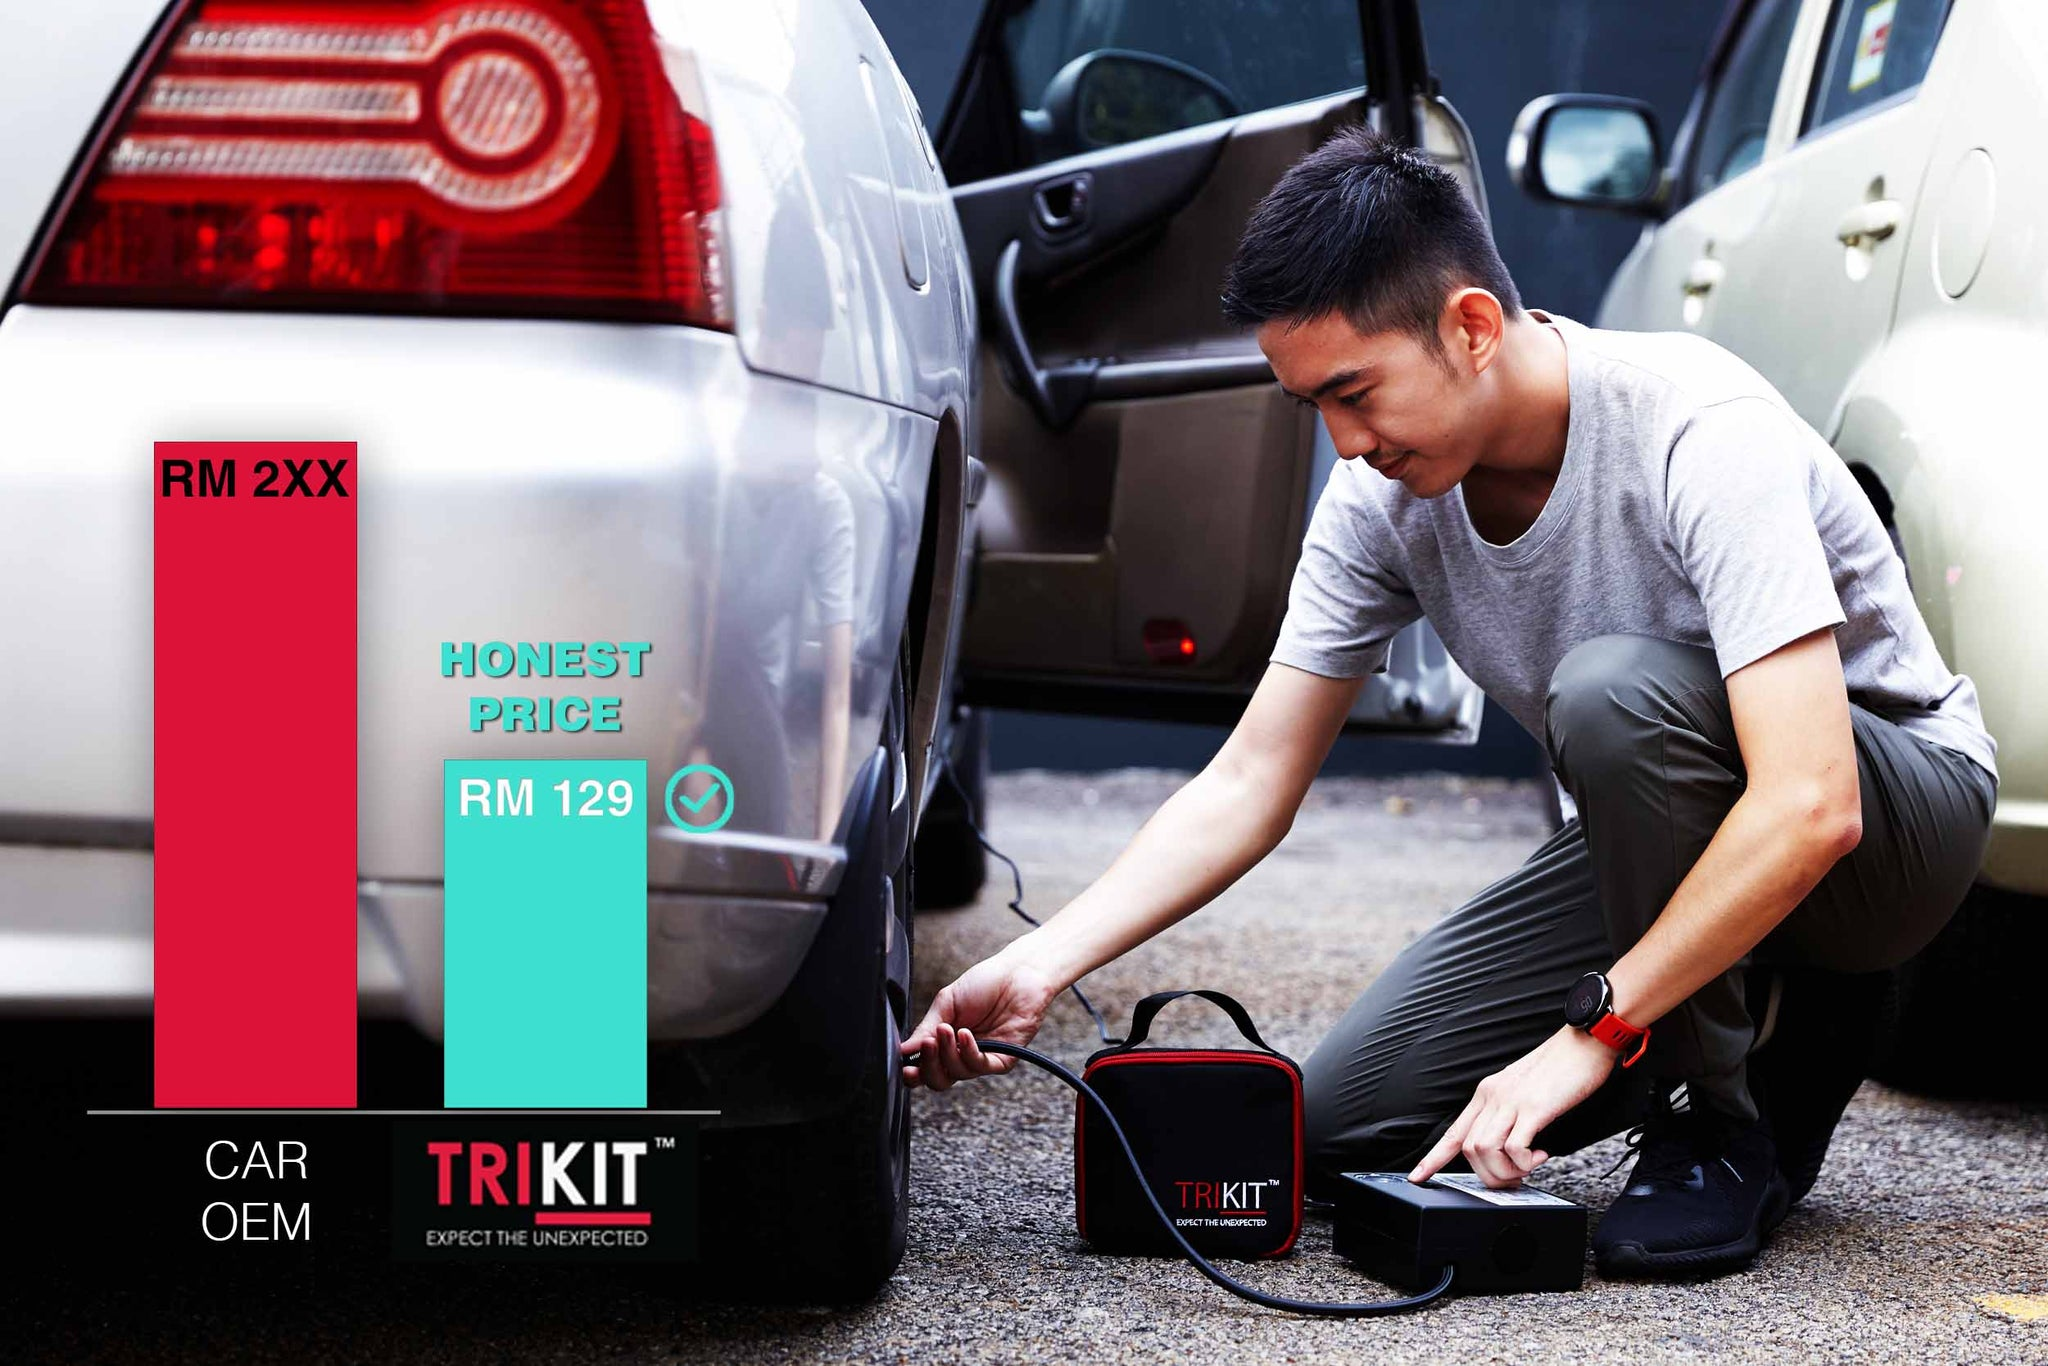 TRIKIT AIRTIRE PORTABLE TIRE INFLATOR